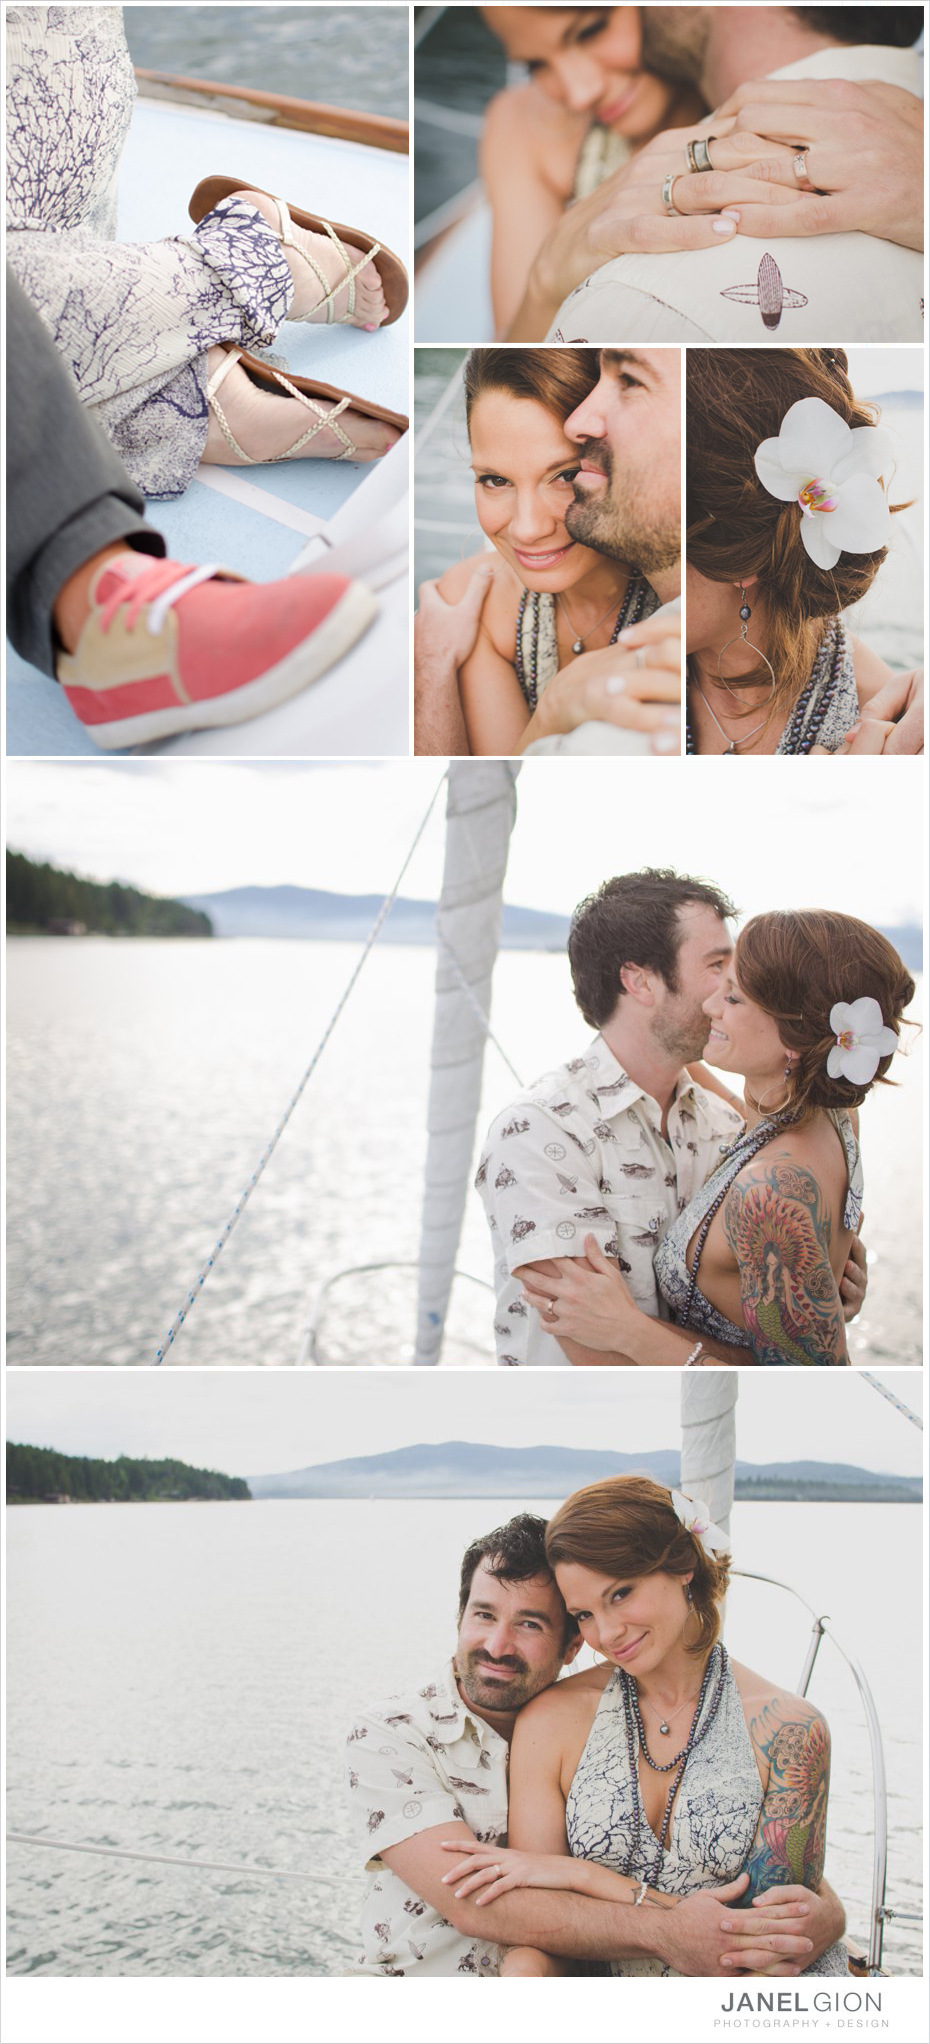 Janel-Gion-sailboat-beach-bikes-engagement-photos_0012-22.jpg